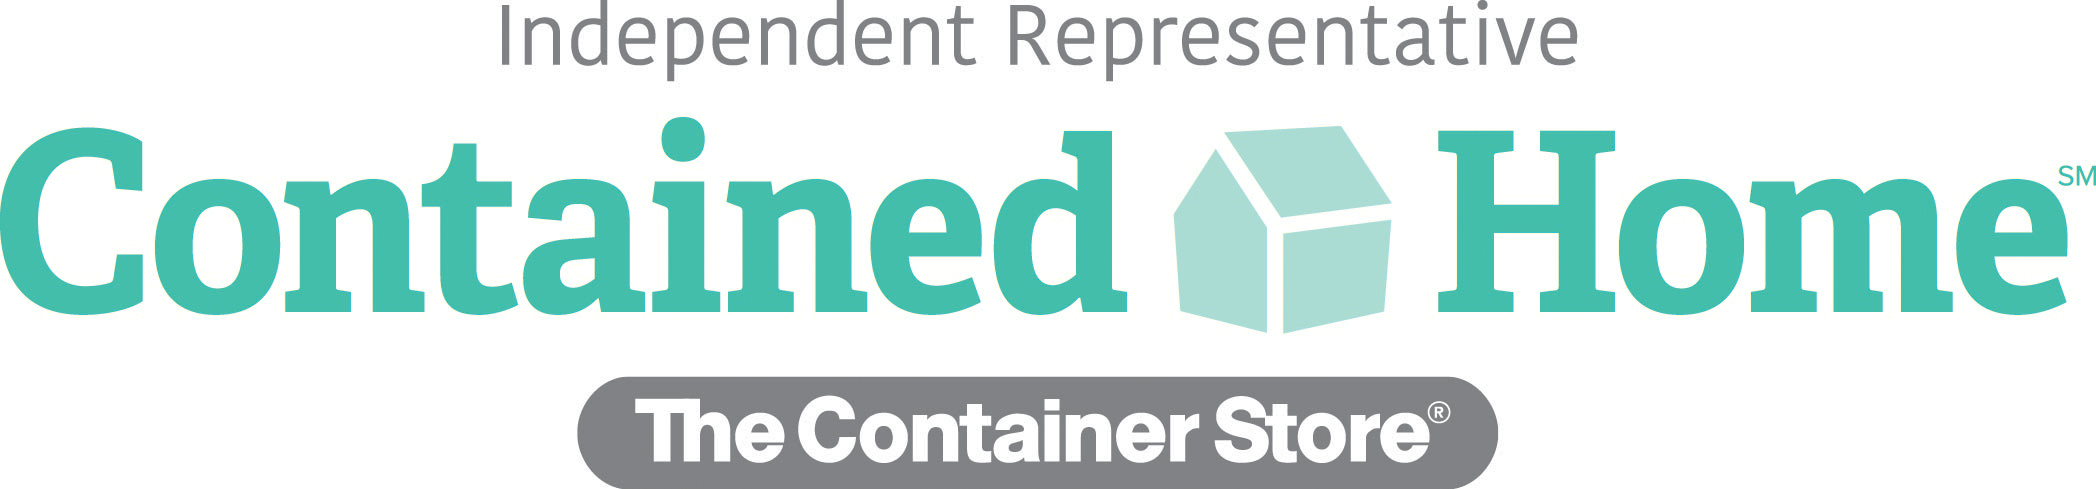 The Contained Home logo